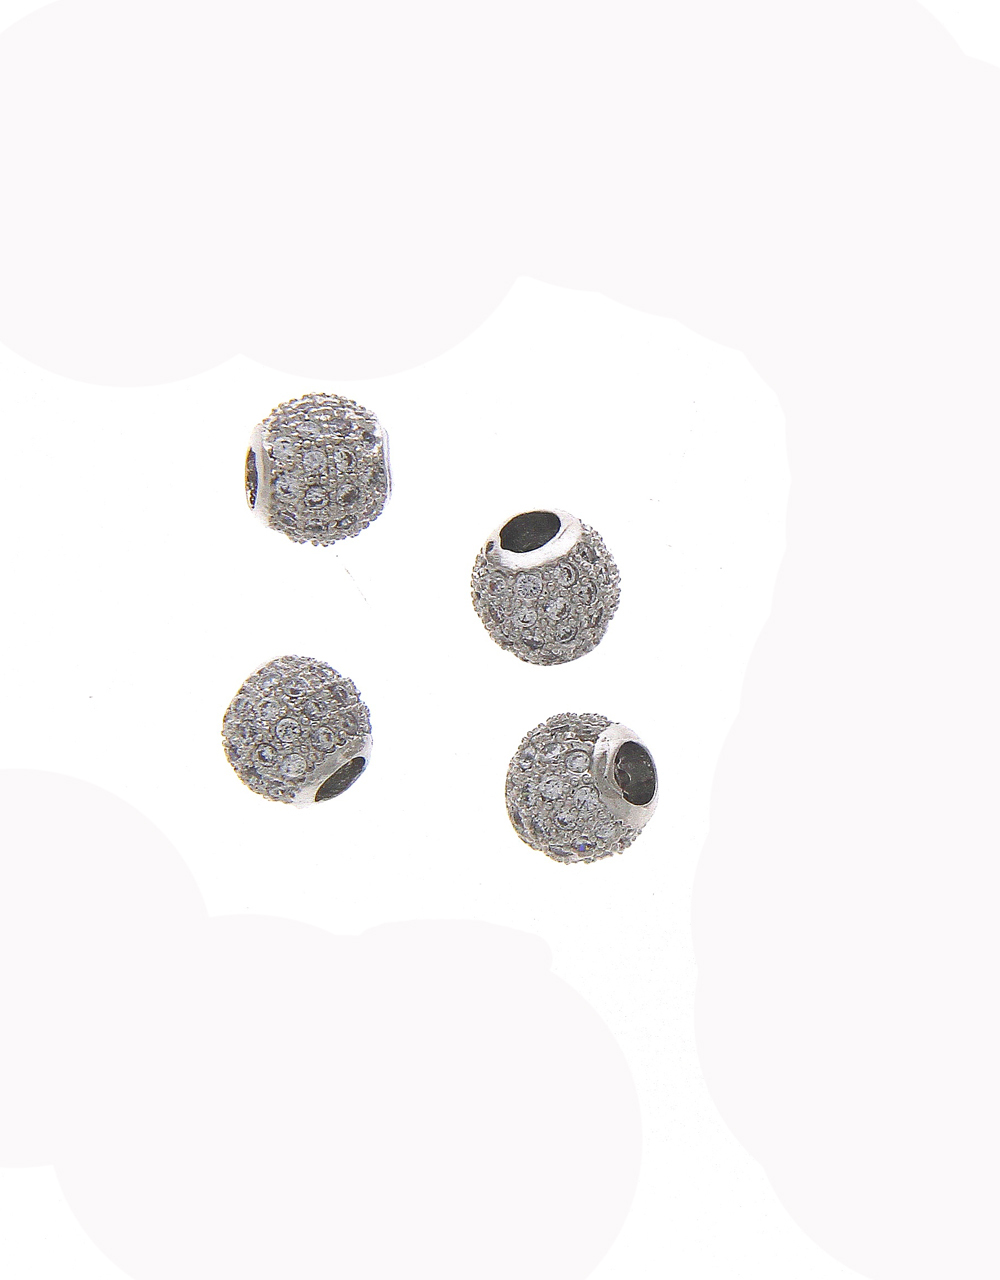 Silver Finish Beads Studded With Diamond Material